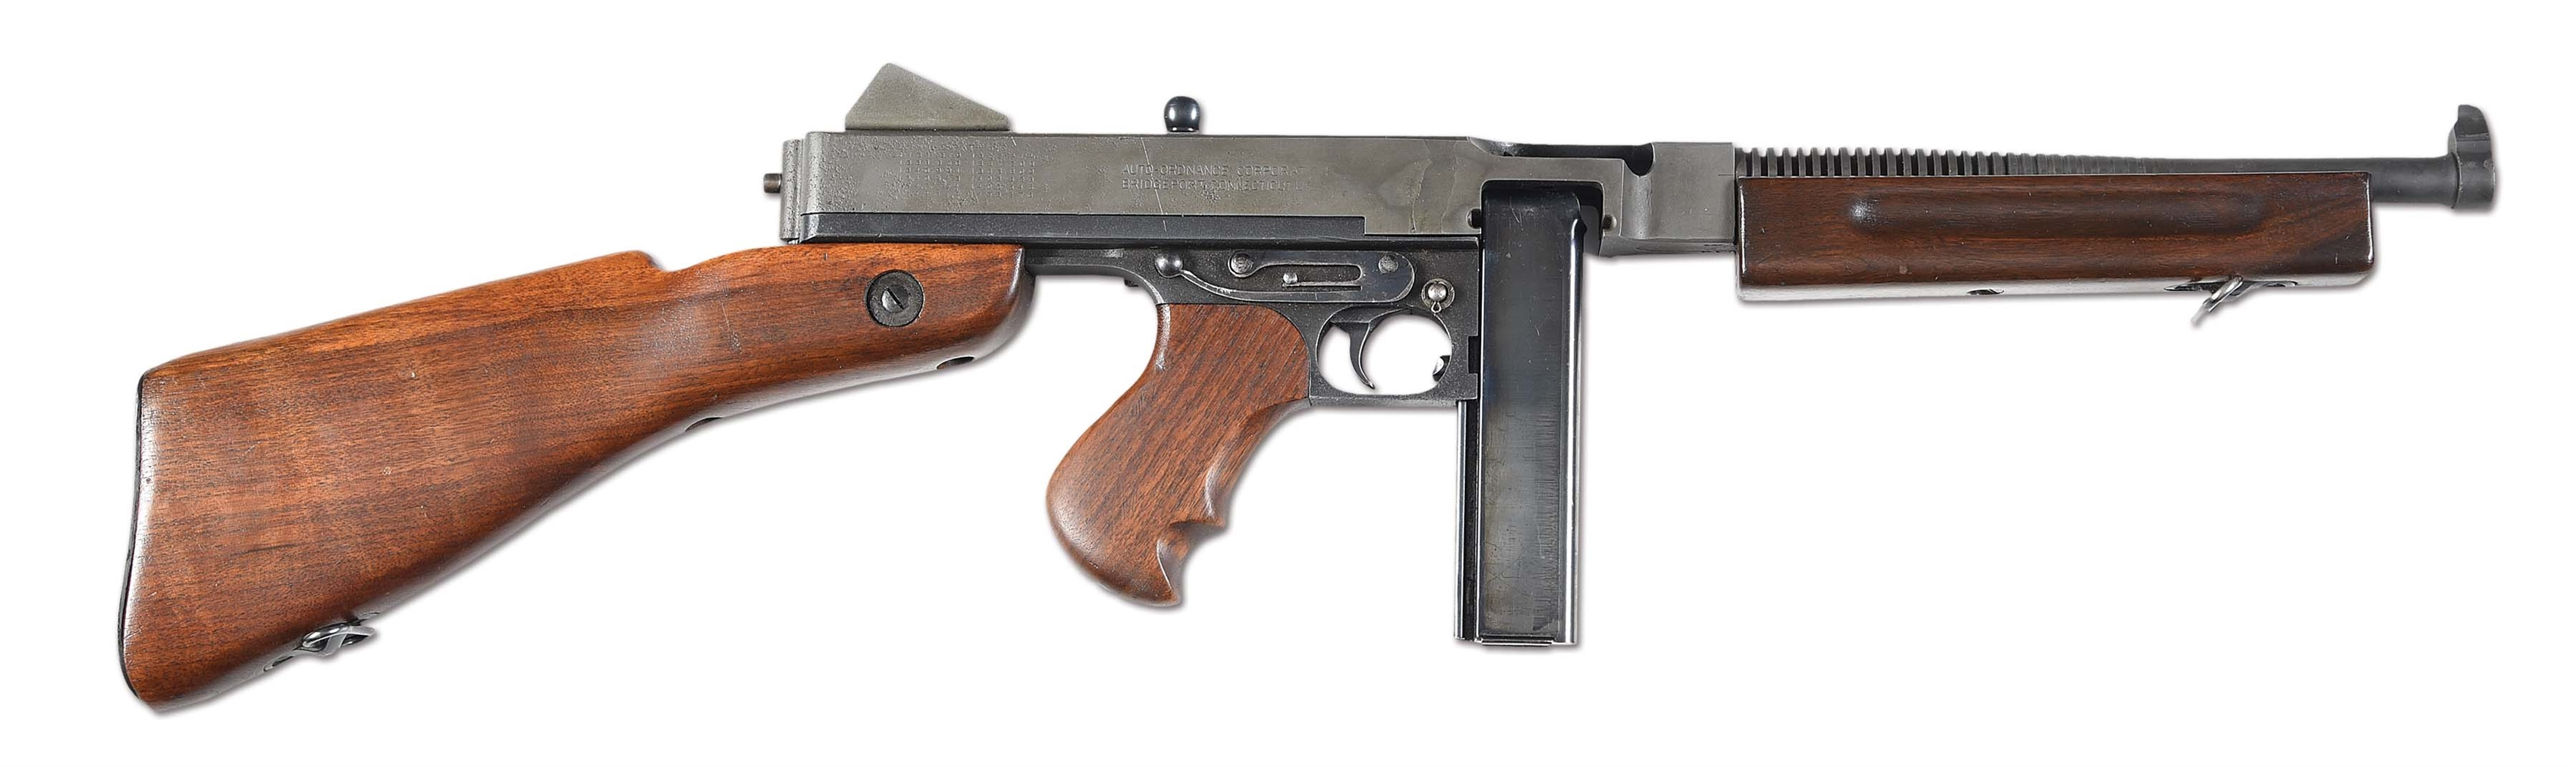 (N) US MODEL 1928A1 THOMPSON MACHINE GUN BY AUTO-ORDNANCE, BRIDGEPORT (CURIO AND RELIC).